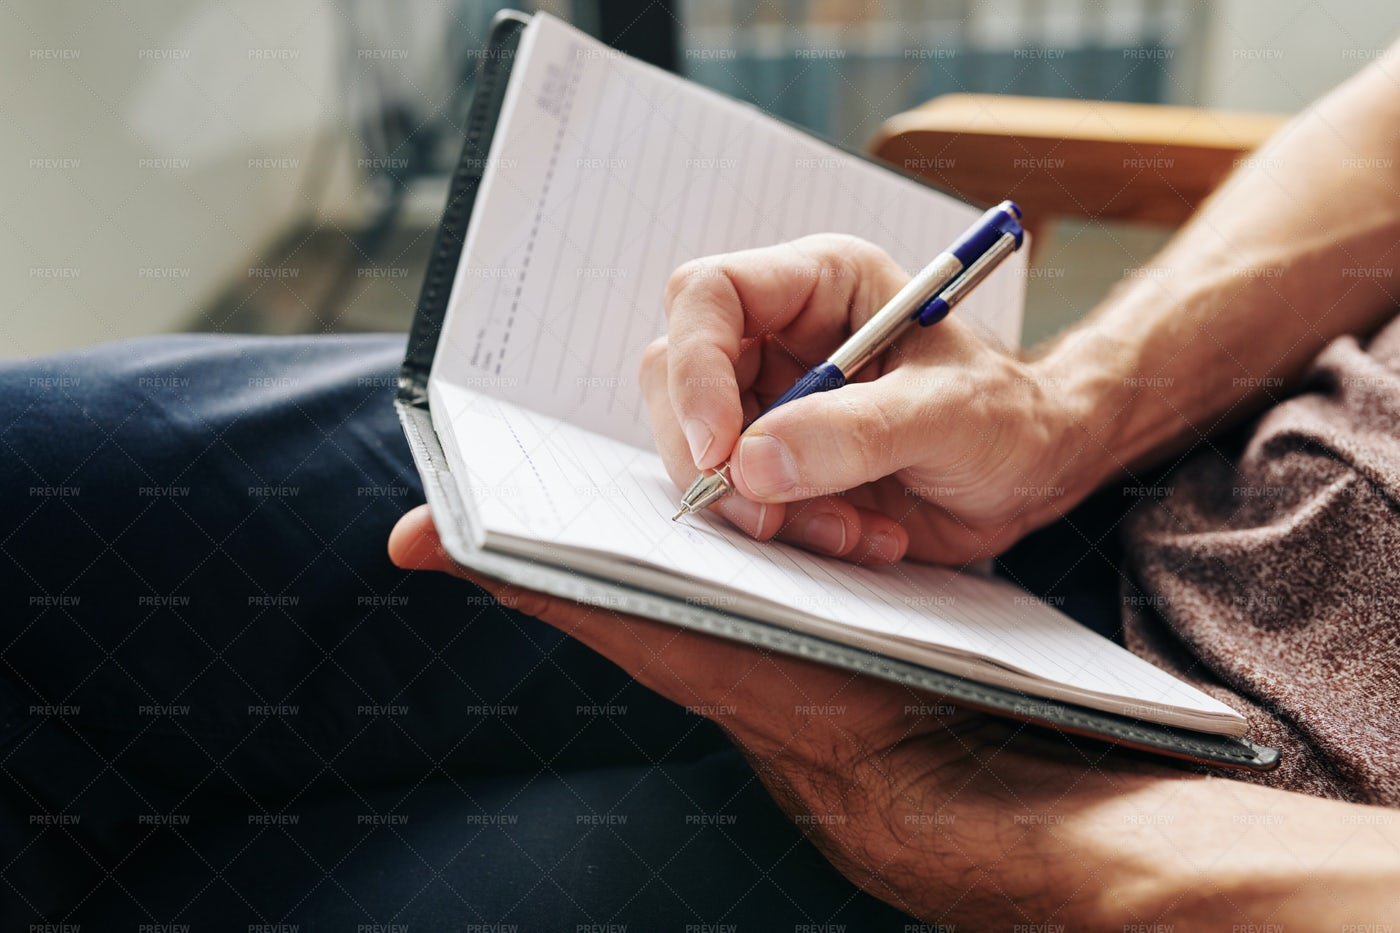 Man Writing Down Thoughts: Stock Photos